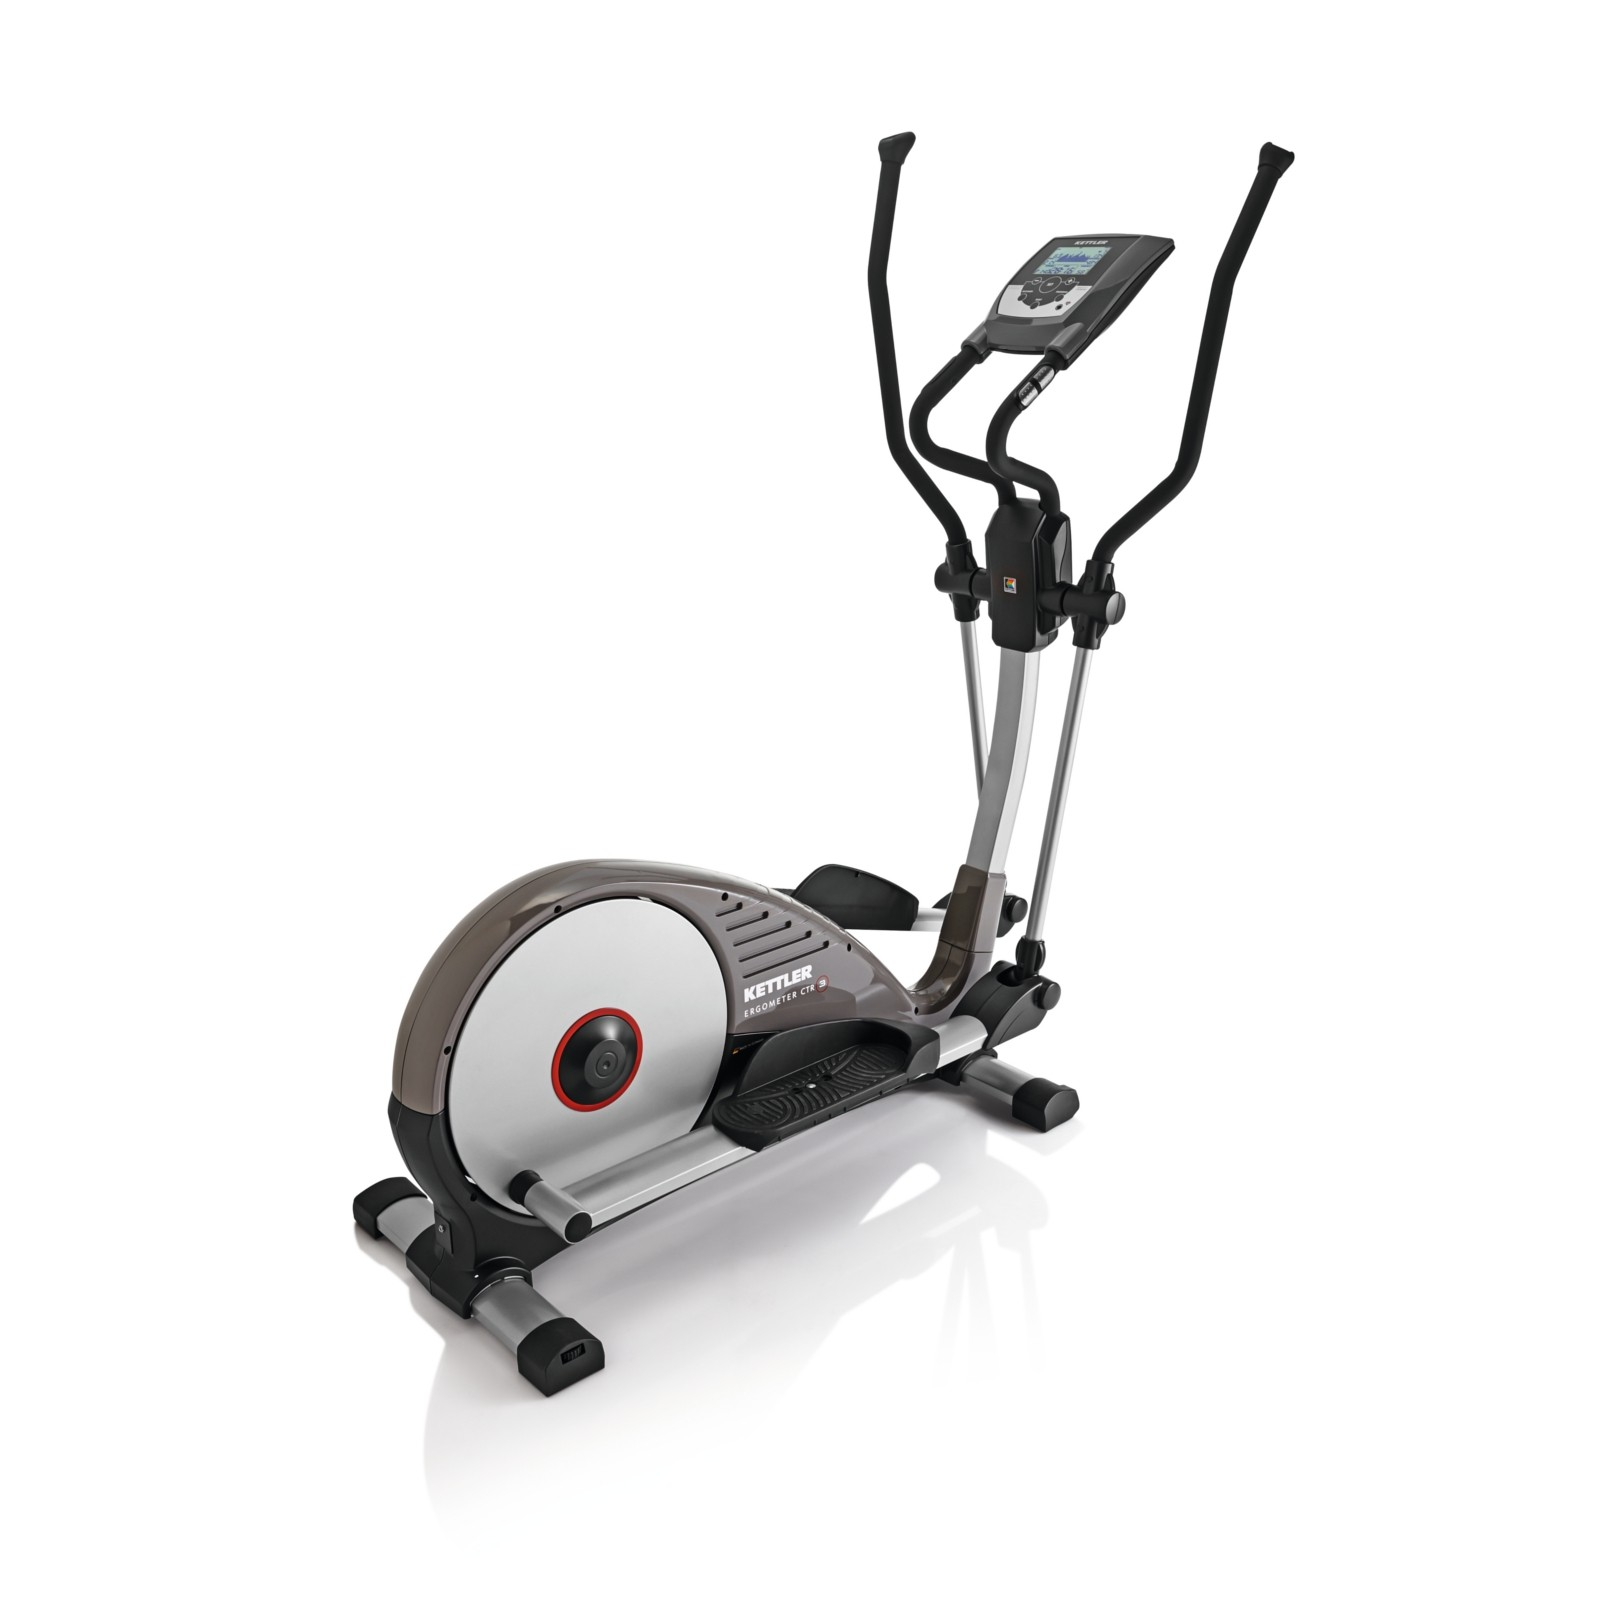 Kettler Fitness Kettler Elliptical Cross Trainer Ctr3 Buy With 166